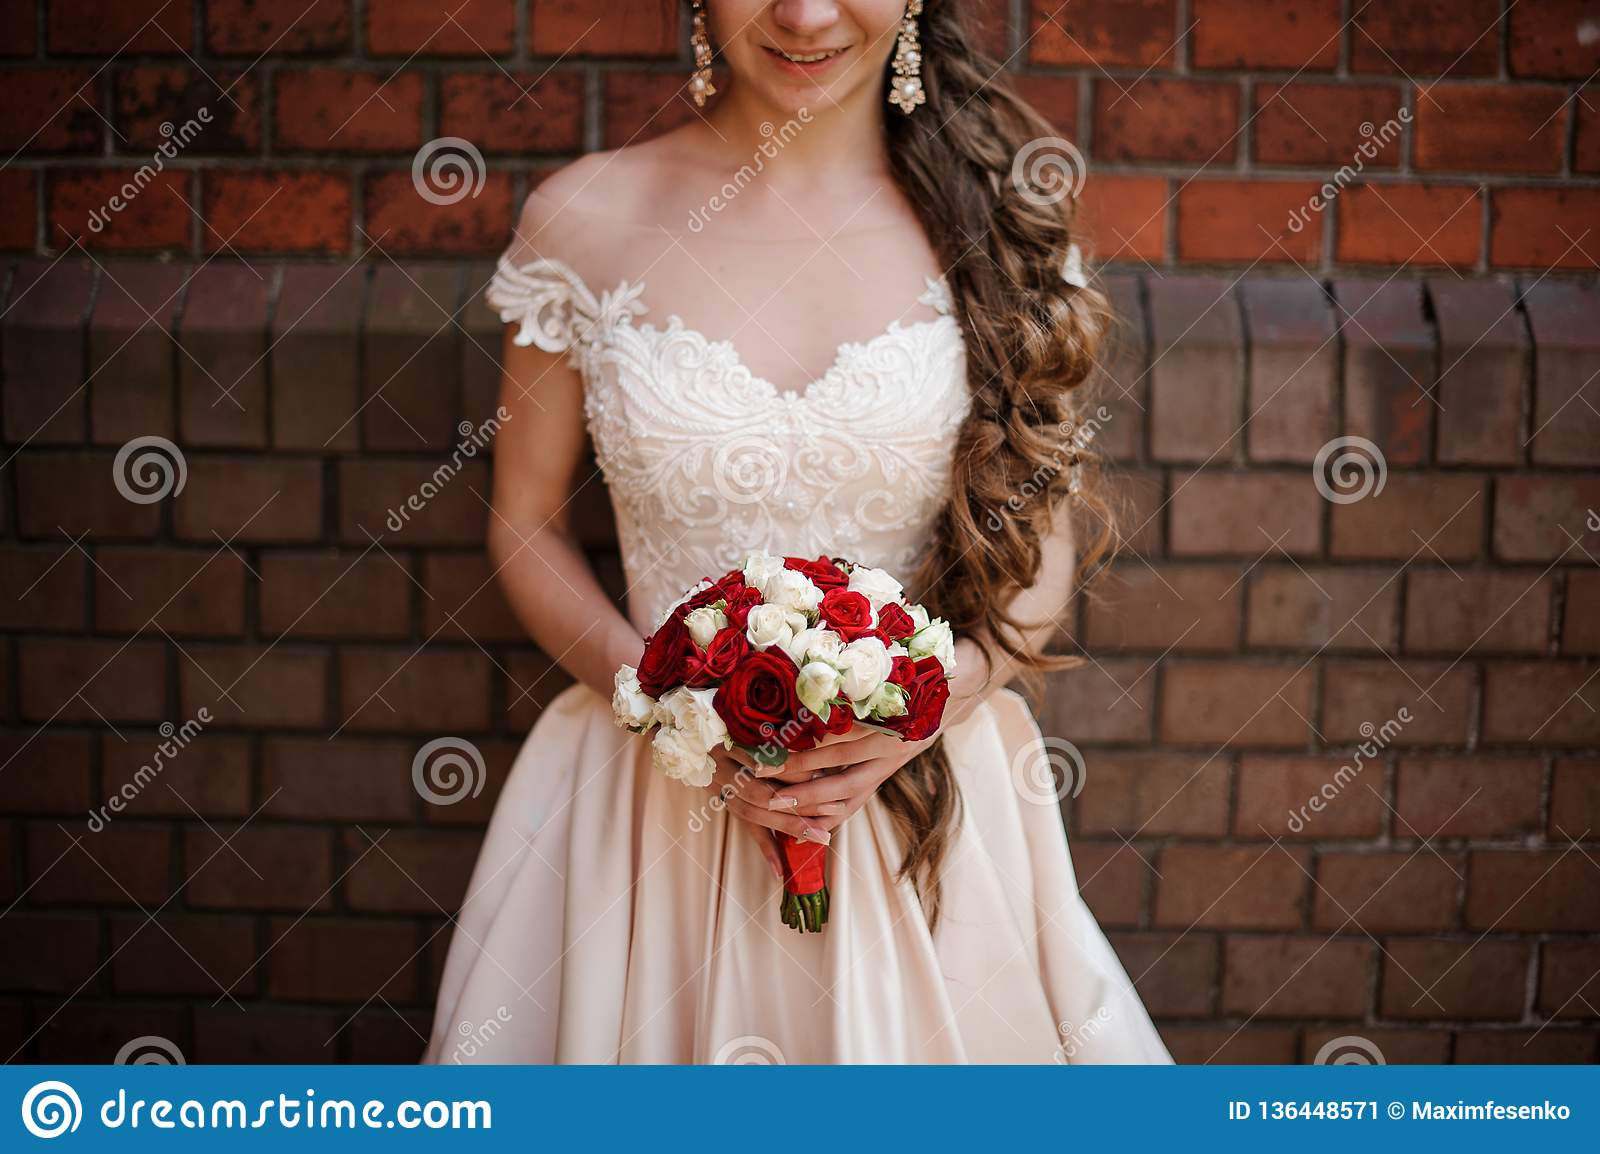 Smiling Bride In White Wedding Dress With A Bouquet Of Red And